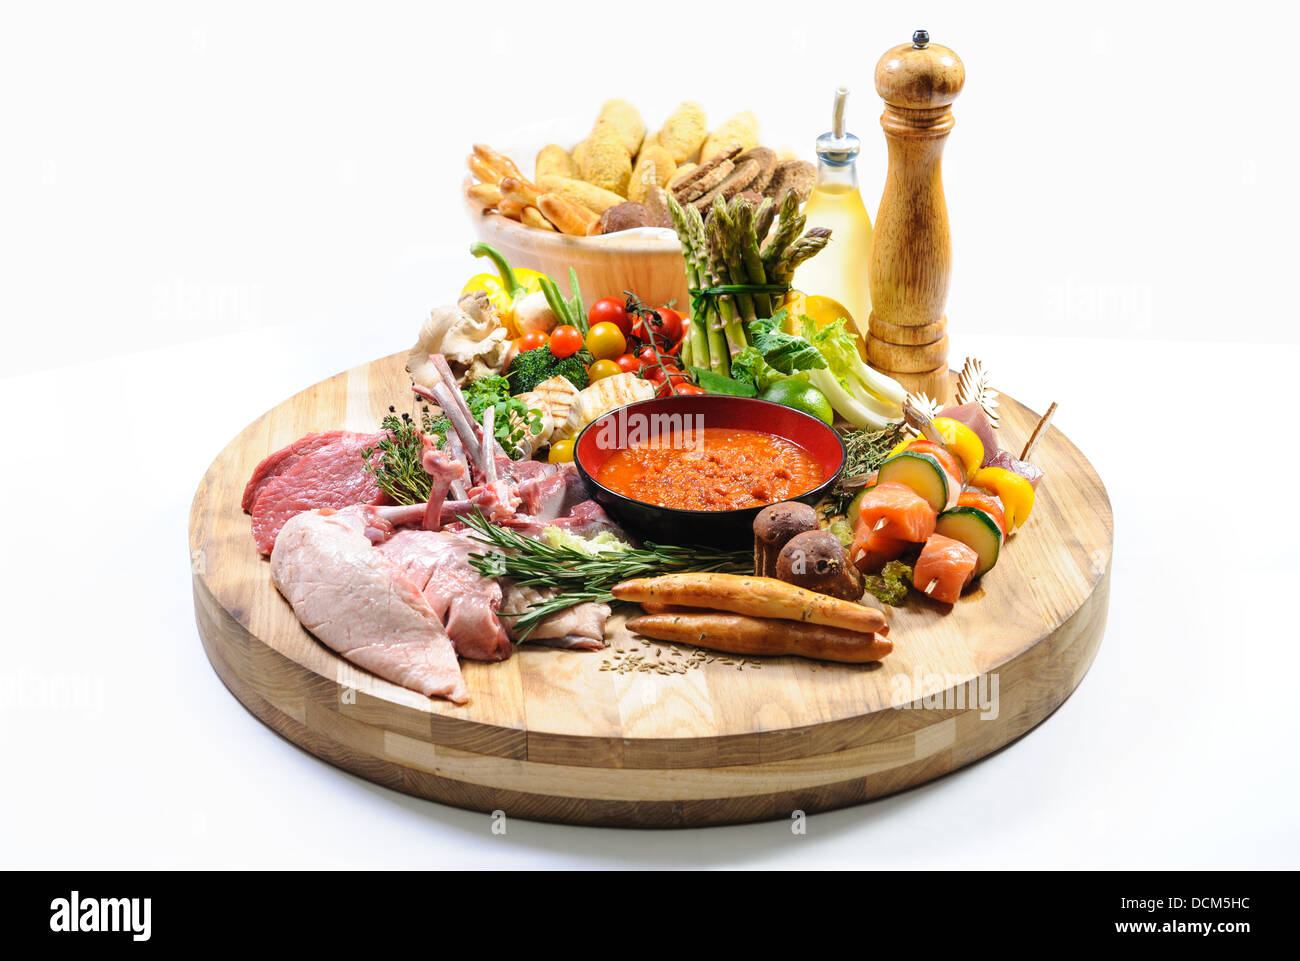 Raw food on a wooden board Stock Photo